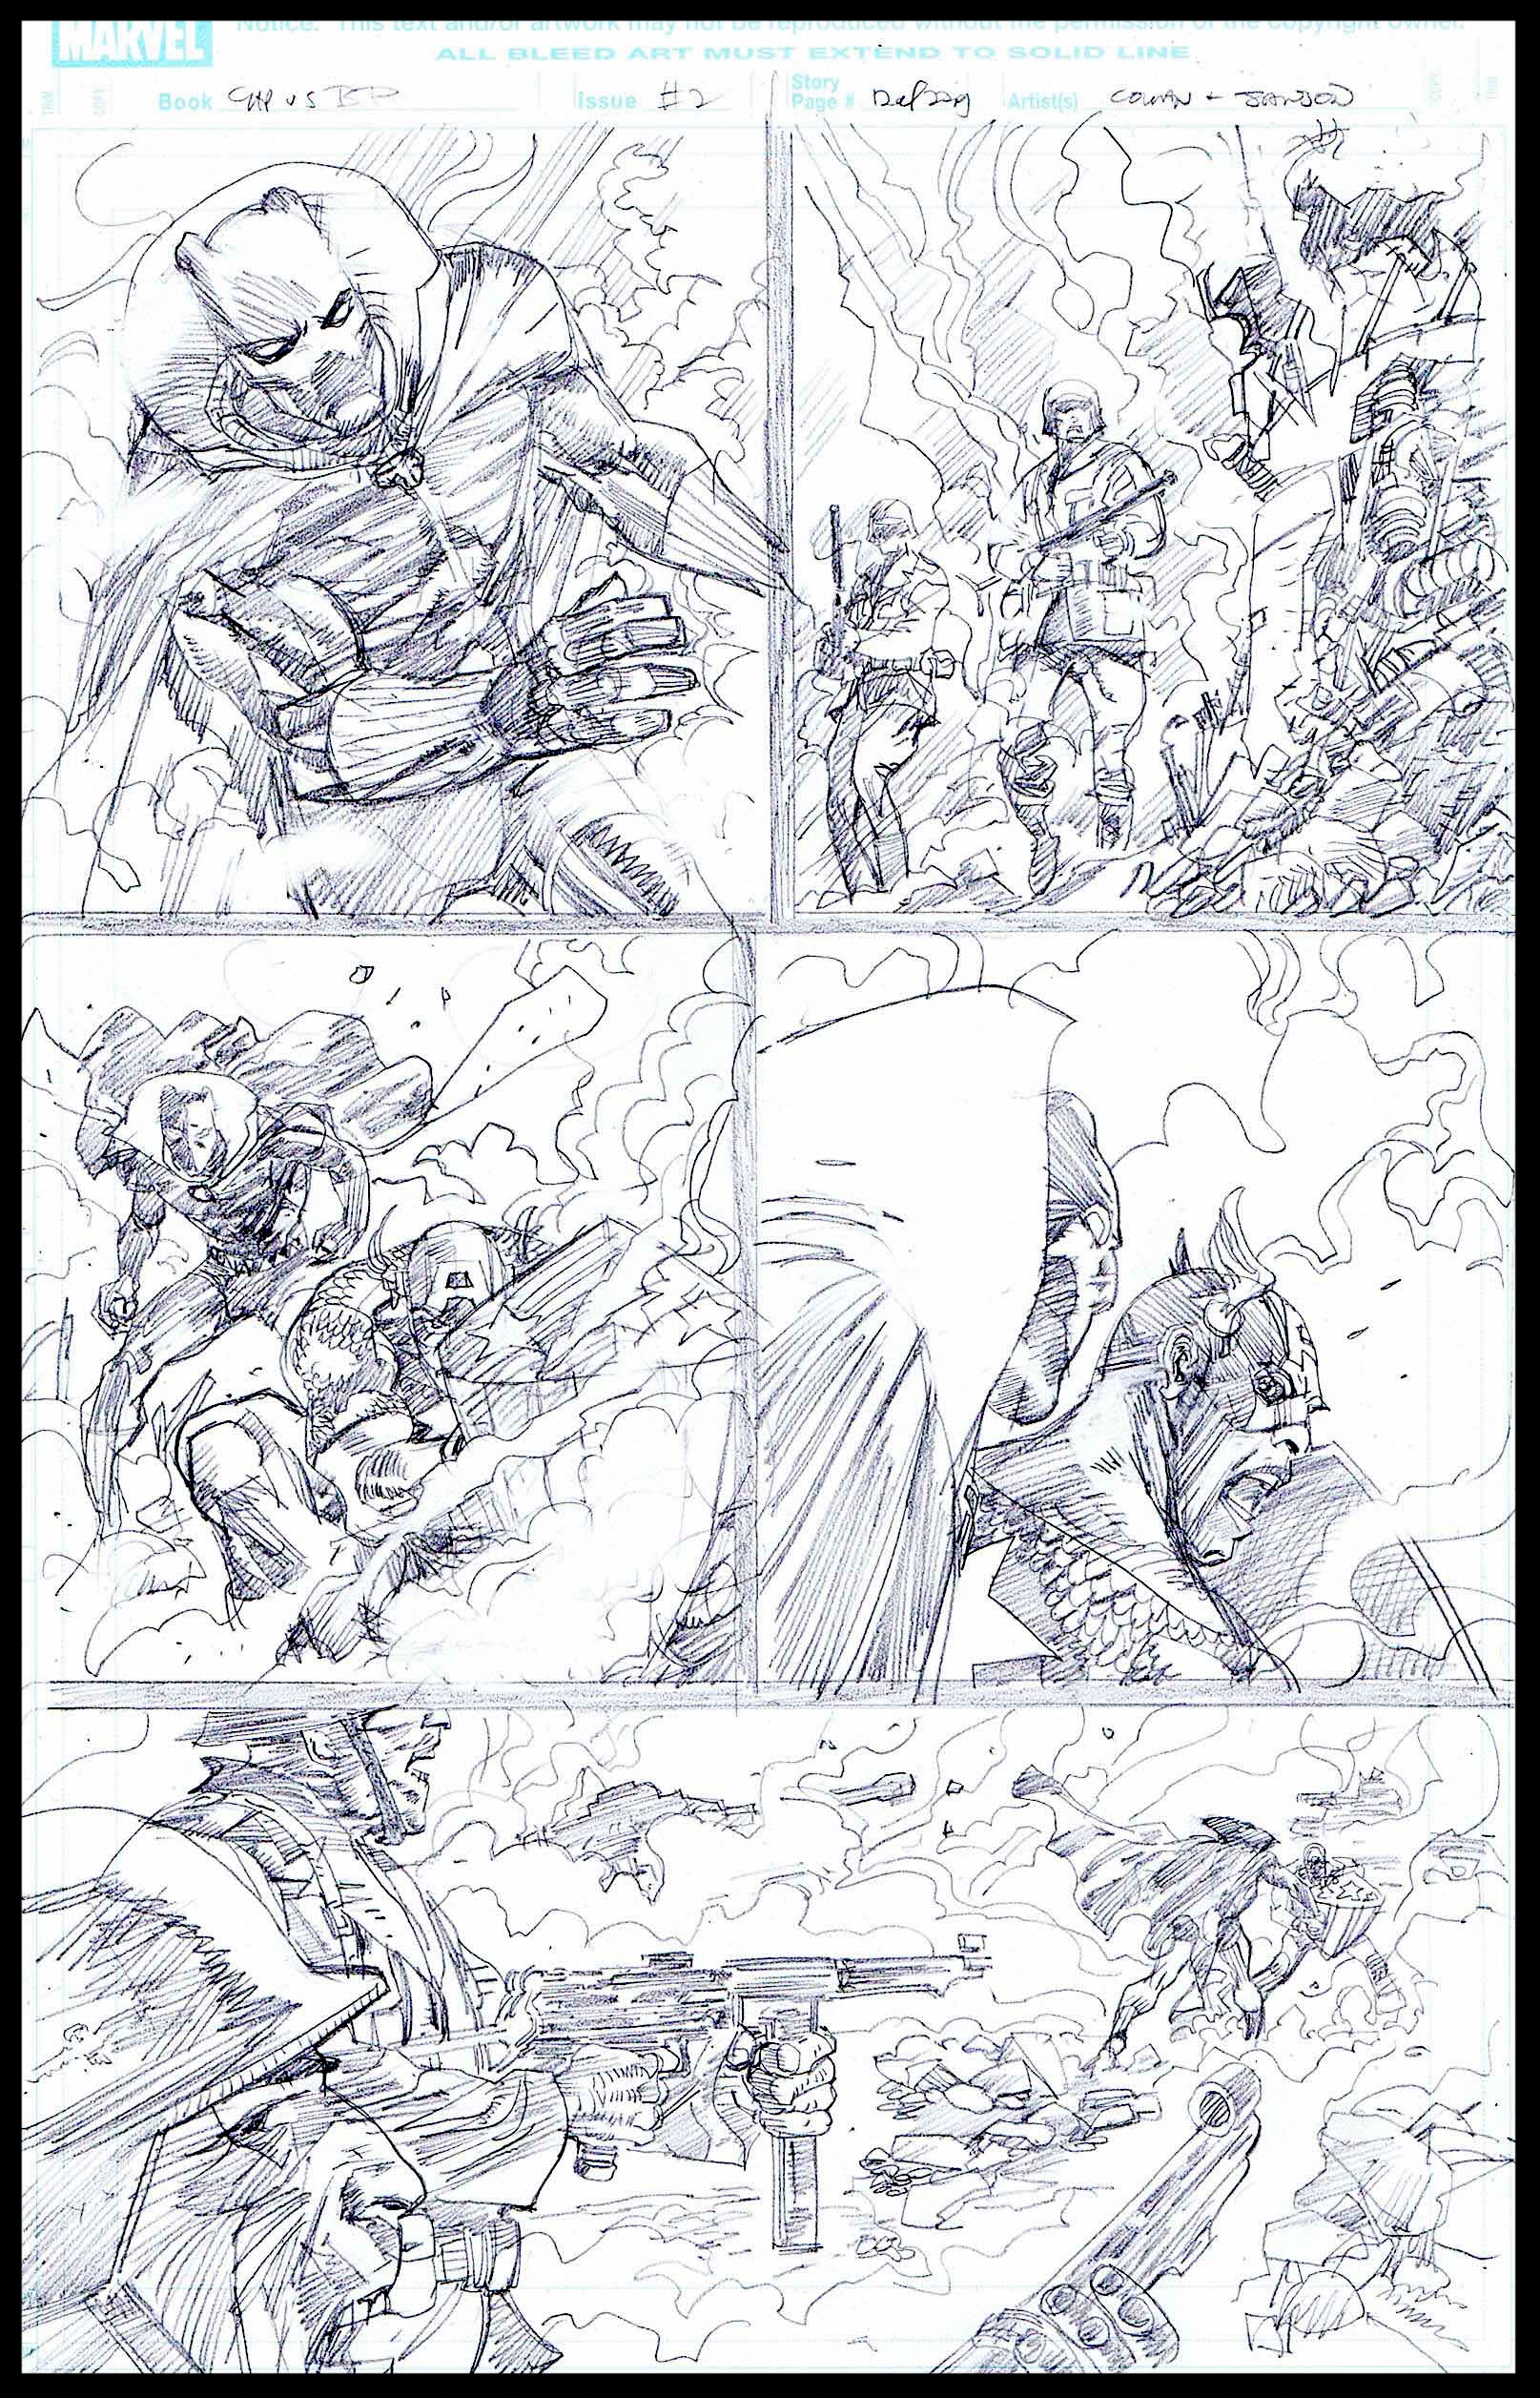 Flags of Our Fathers #2 - Page 12 - Pencils